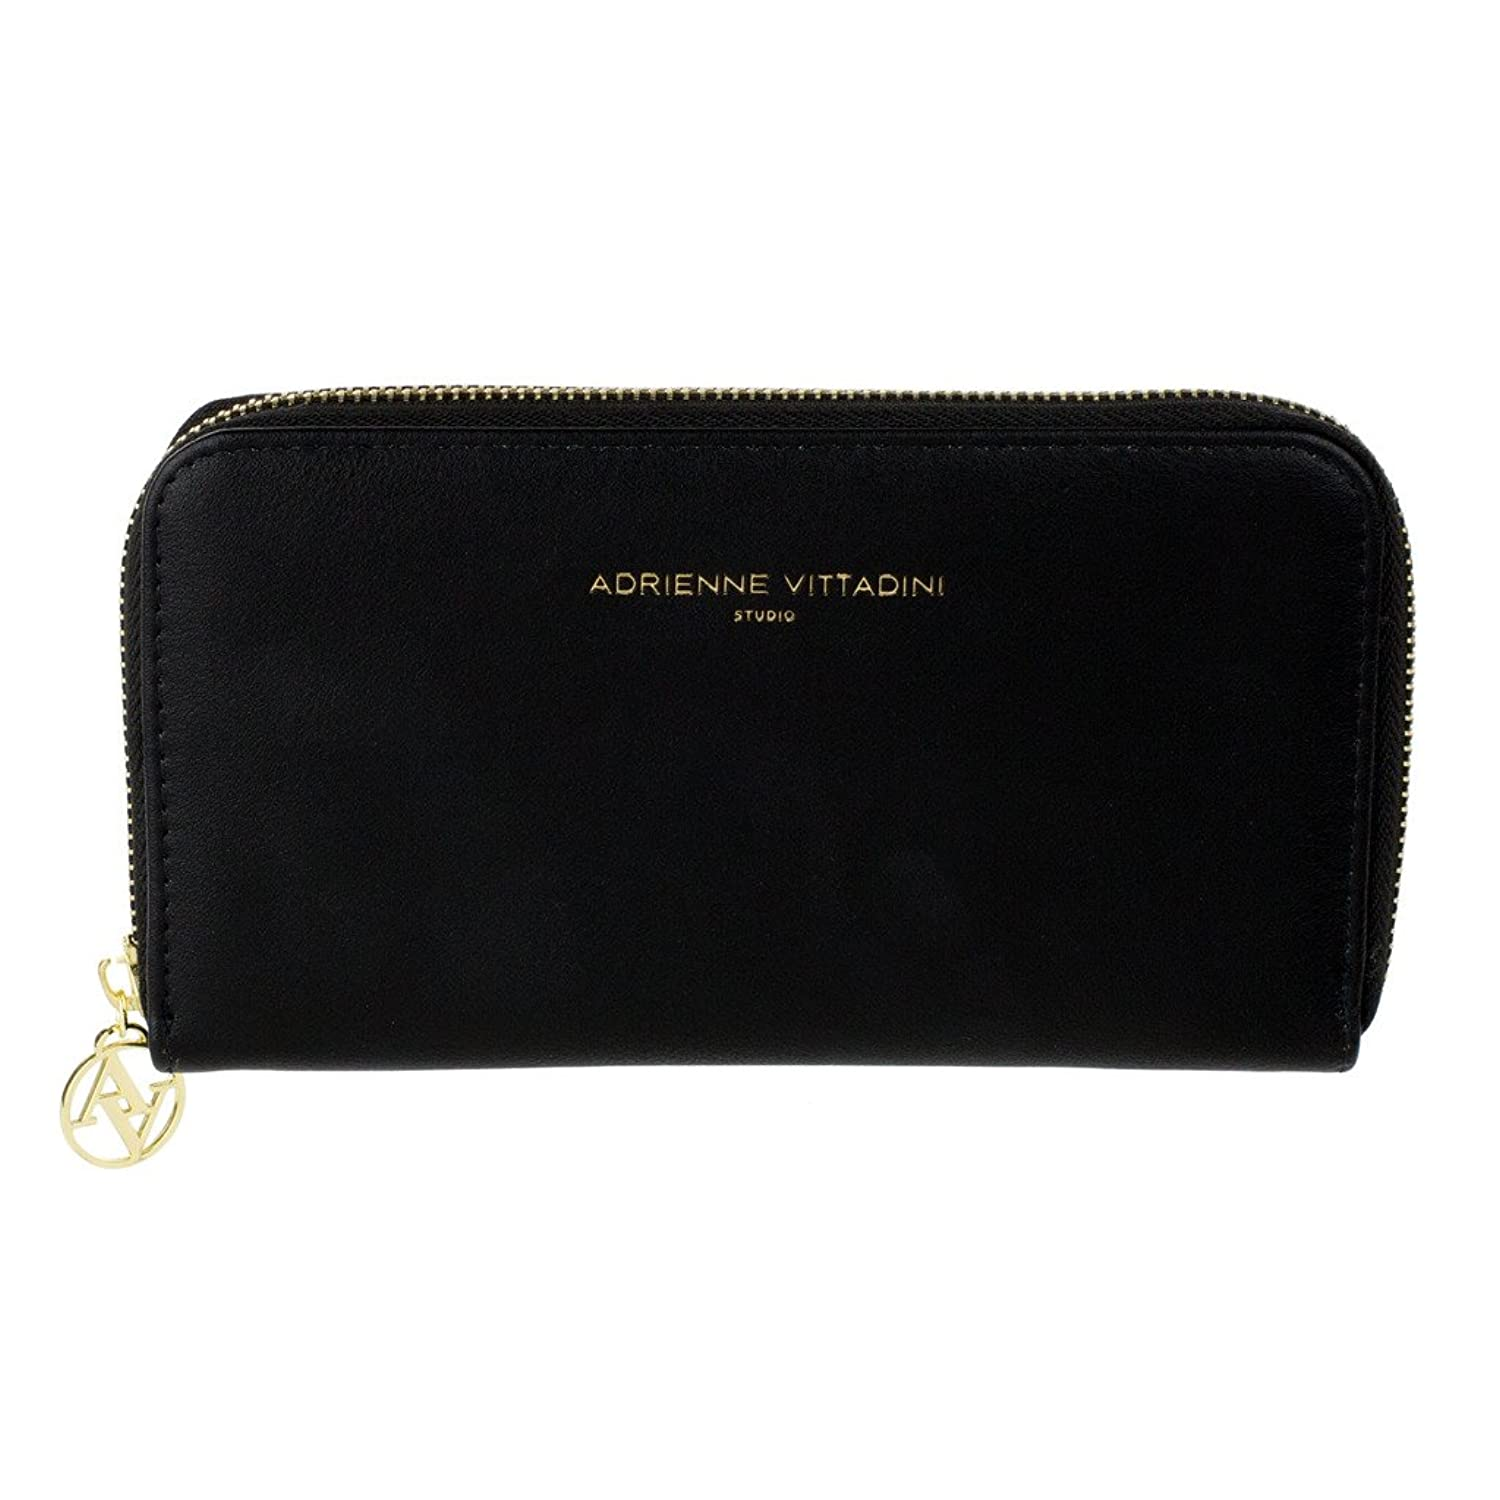 Adrienne Vittadini Large Zip Around Wallet